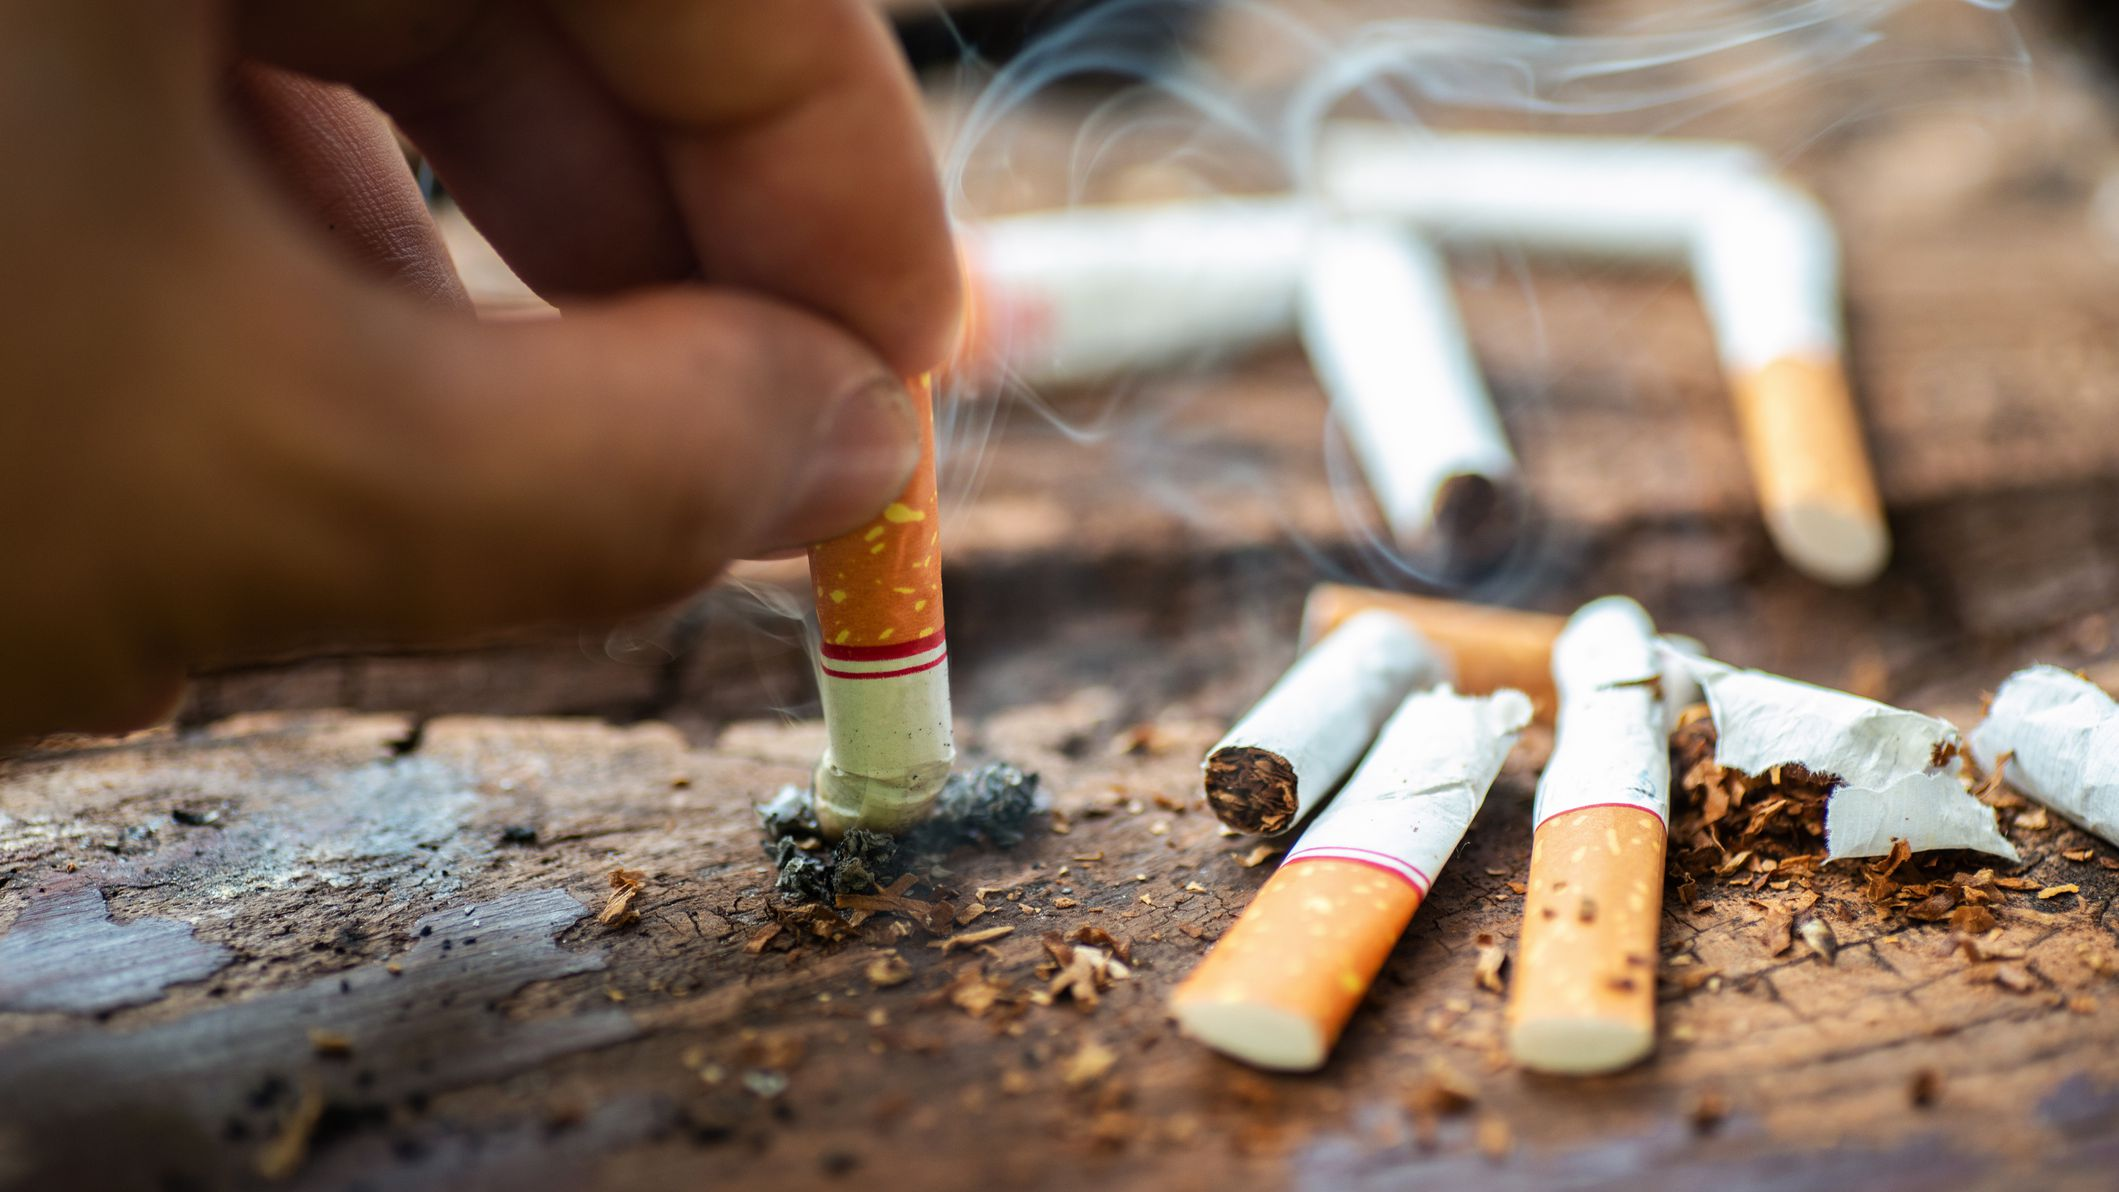 Health Risks and Diseases of Smoking